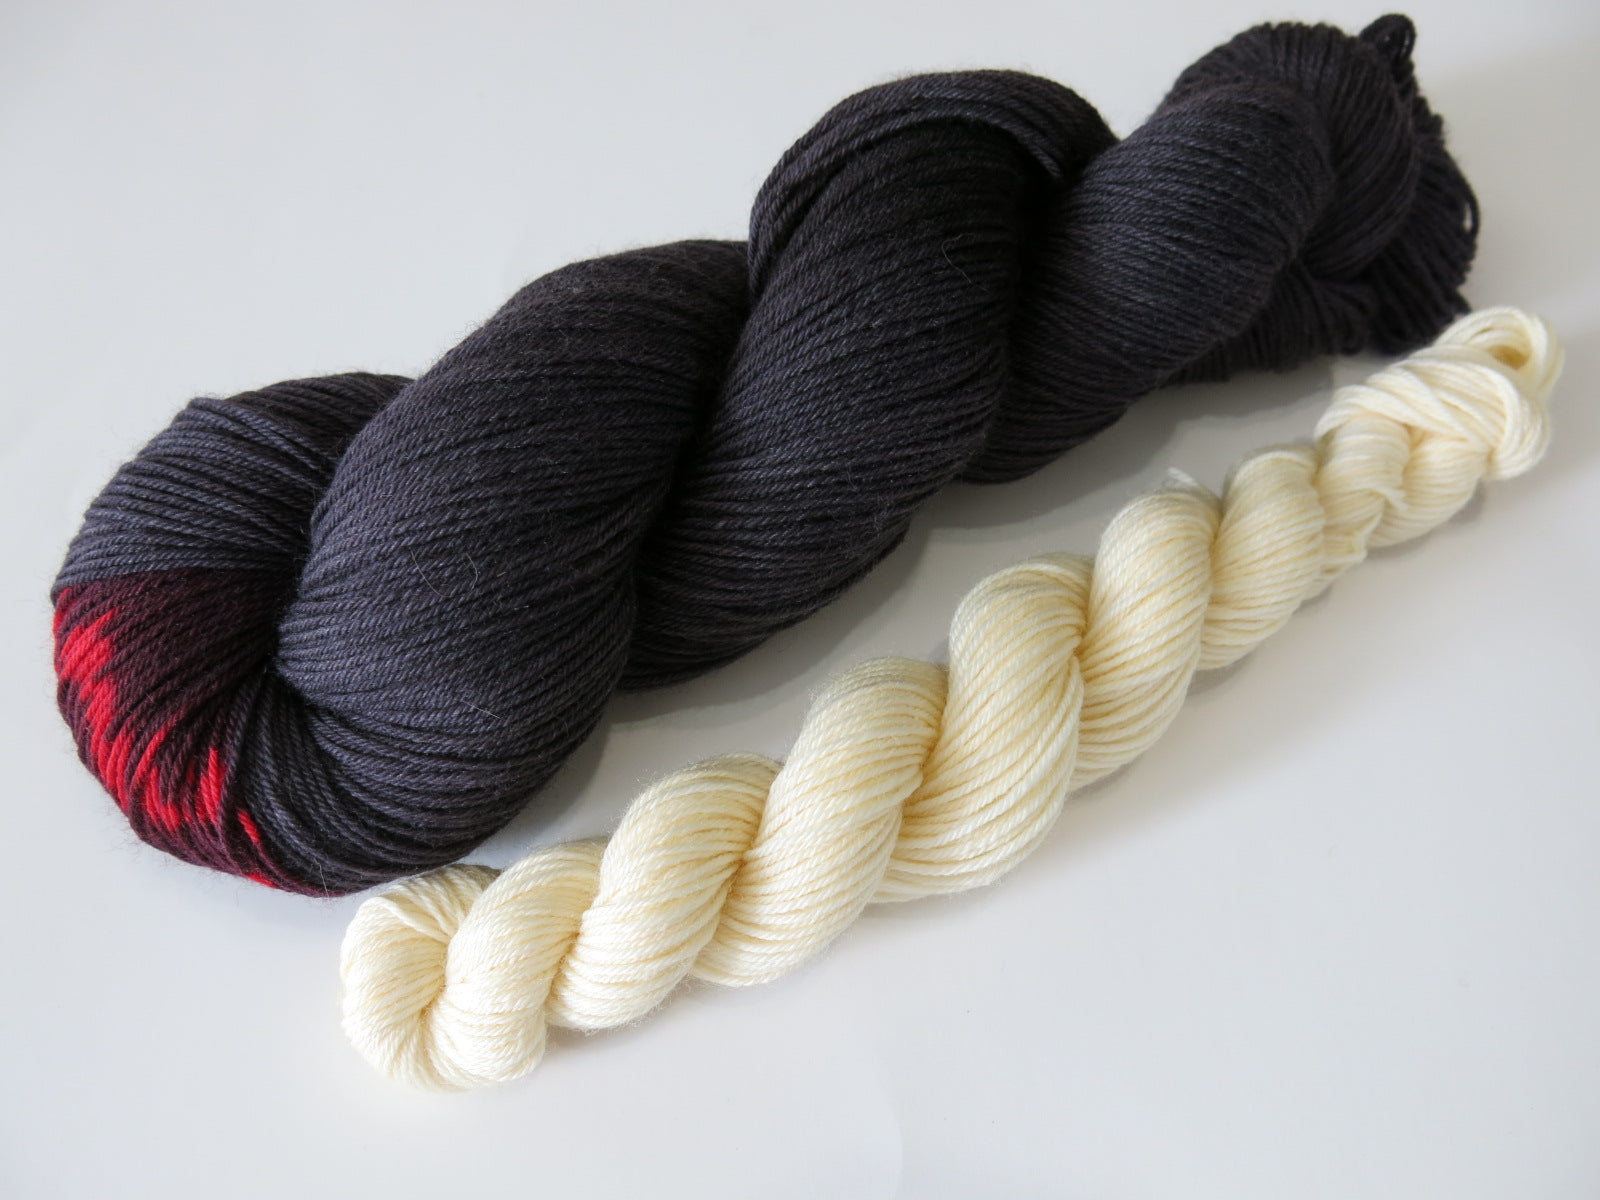 black widow spider and egg sack coloured merino sock yarn mini skein